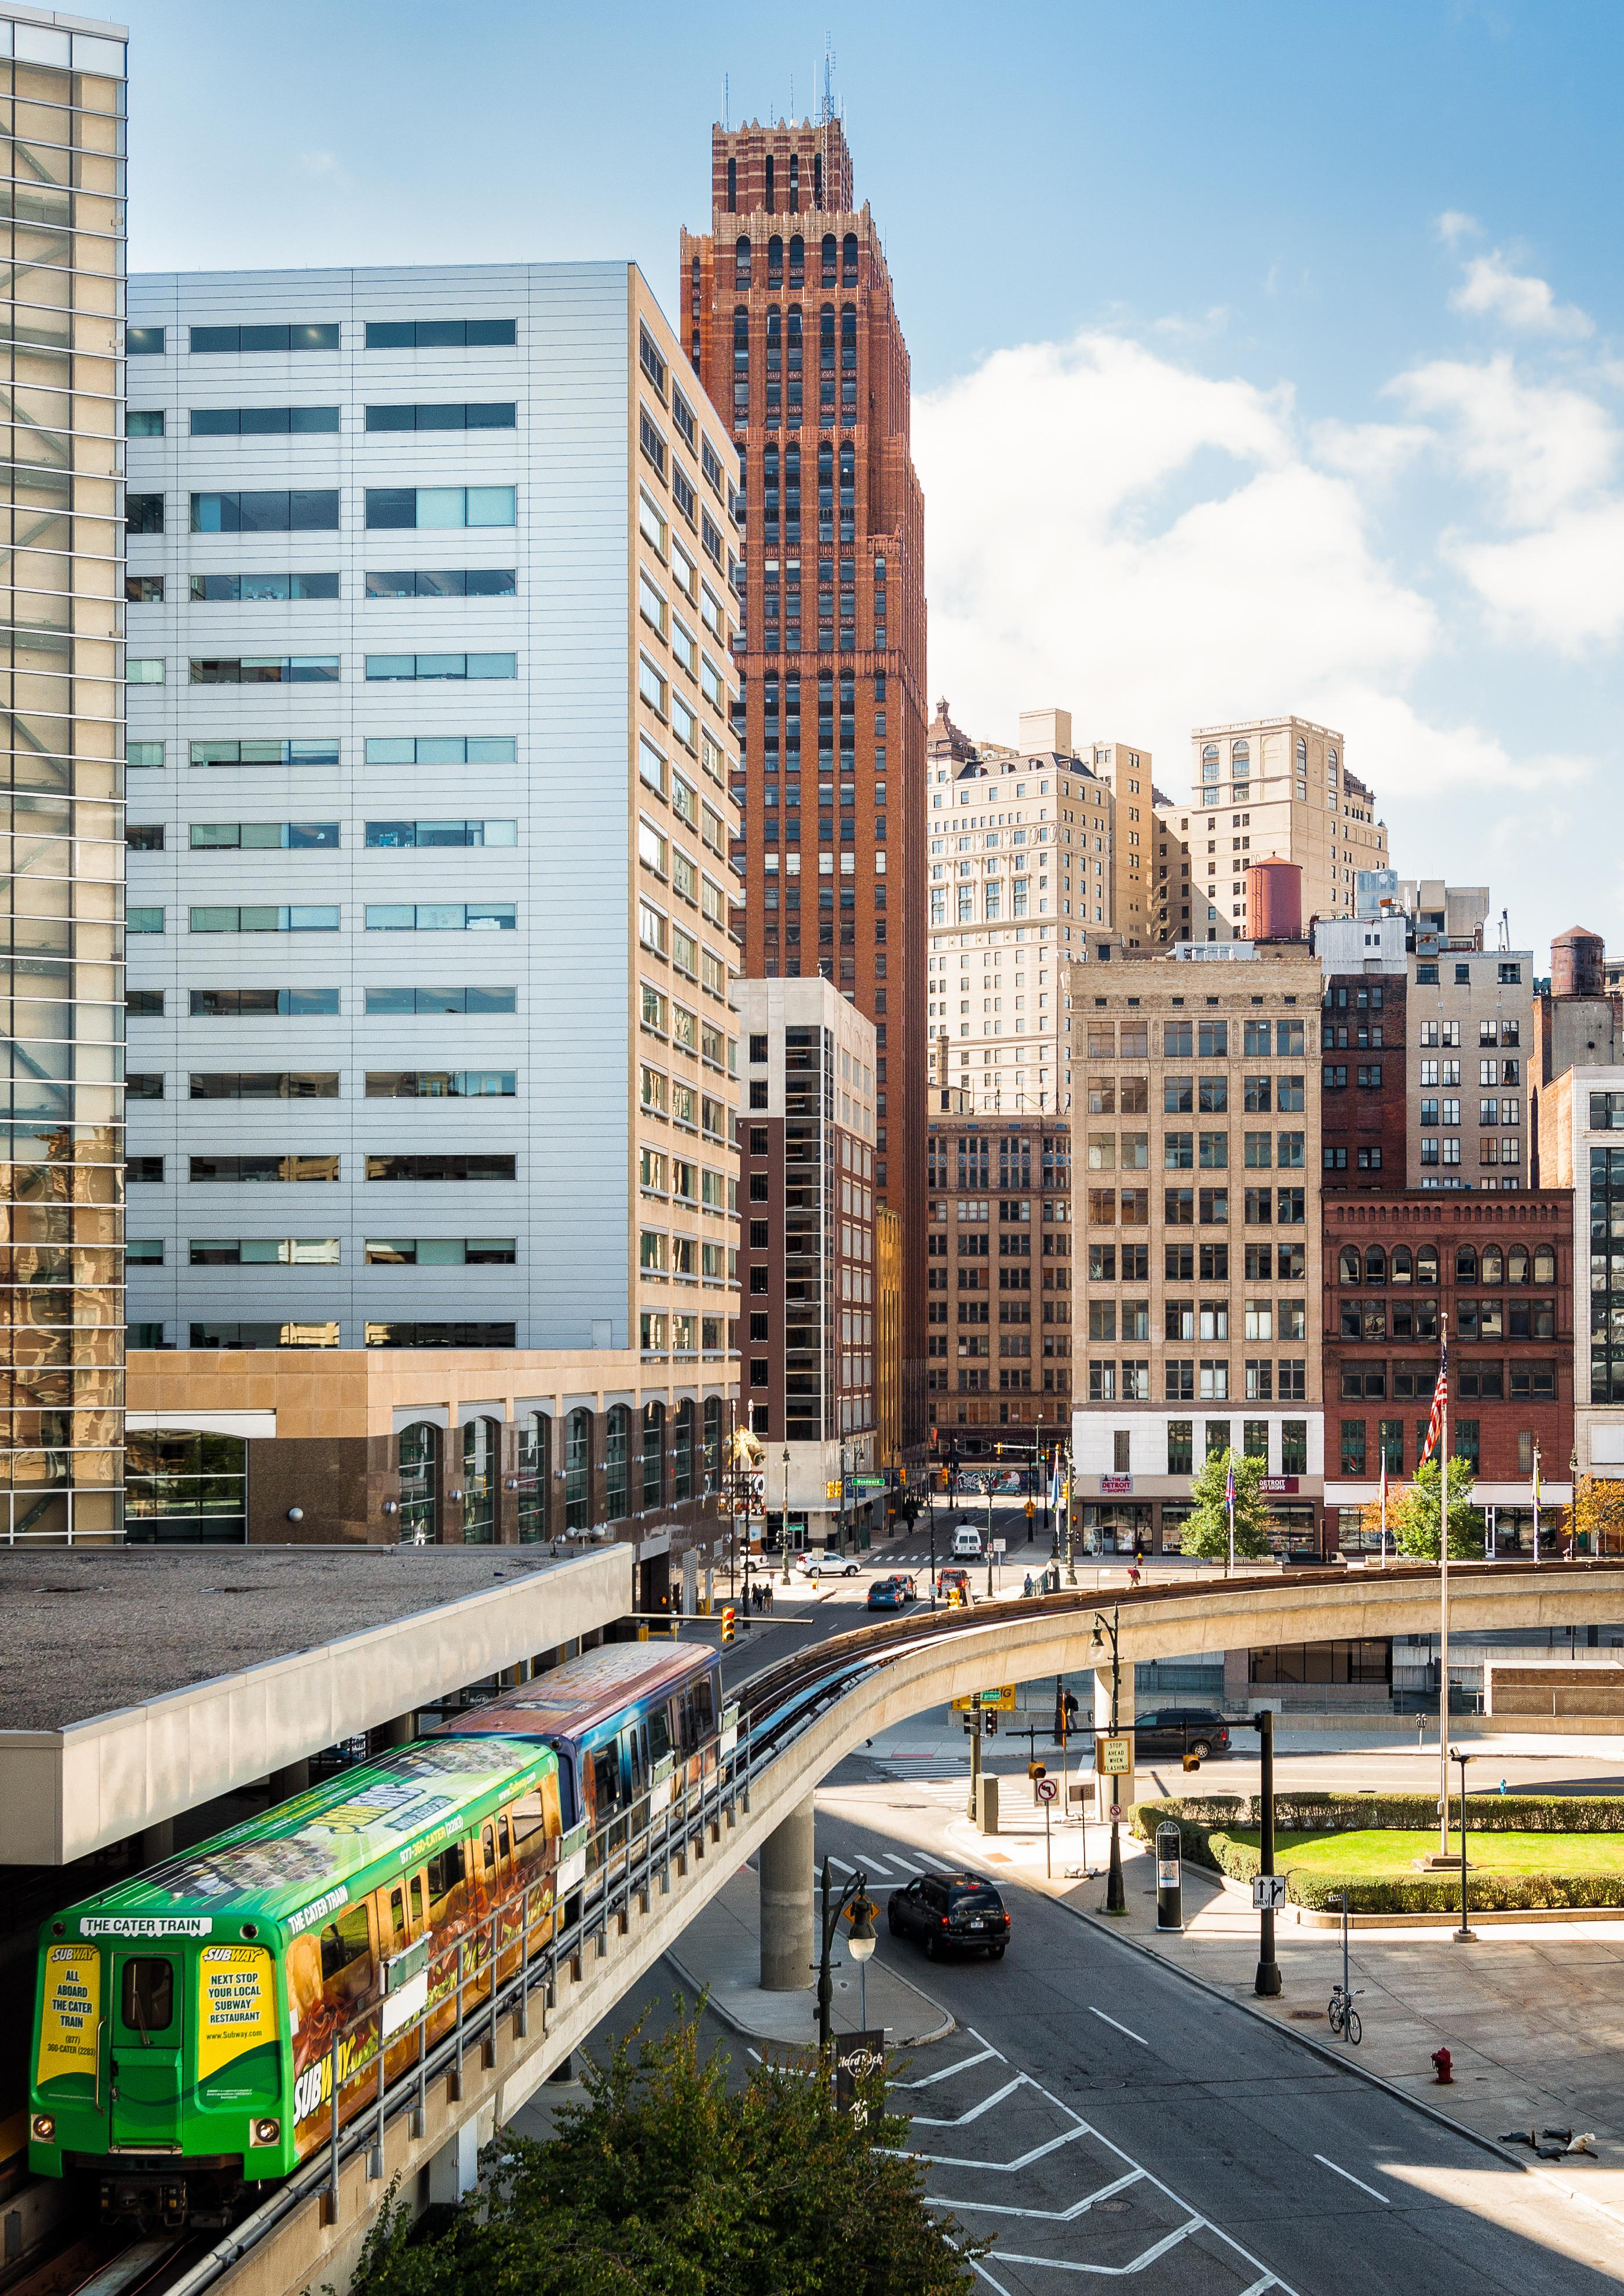 find cheap flights from philadelphia to detroit starting at 121 rh momondo com cheap flights from detroit to philadelphia pa flights from philadelphia to detroit